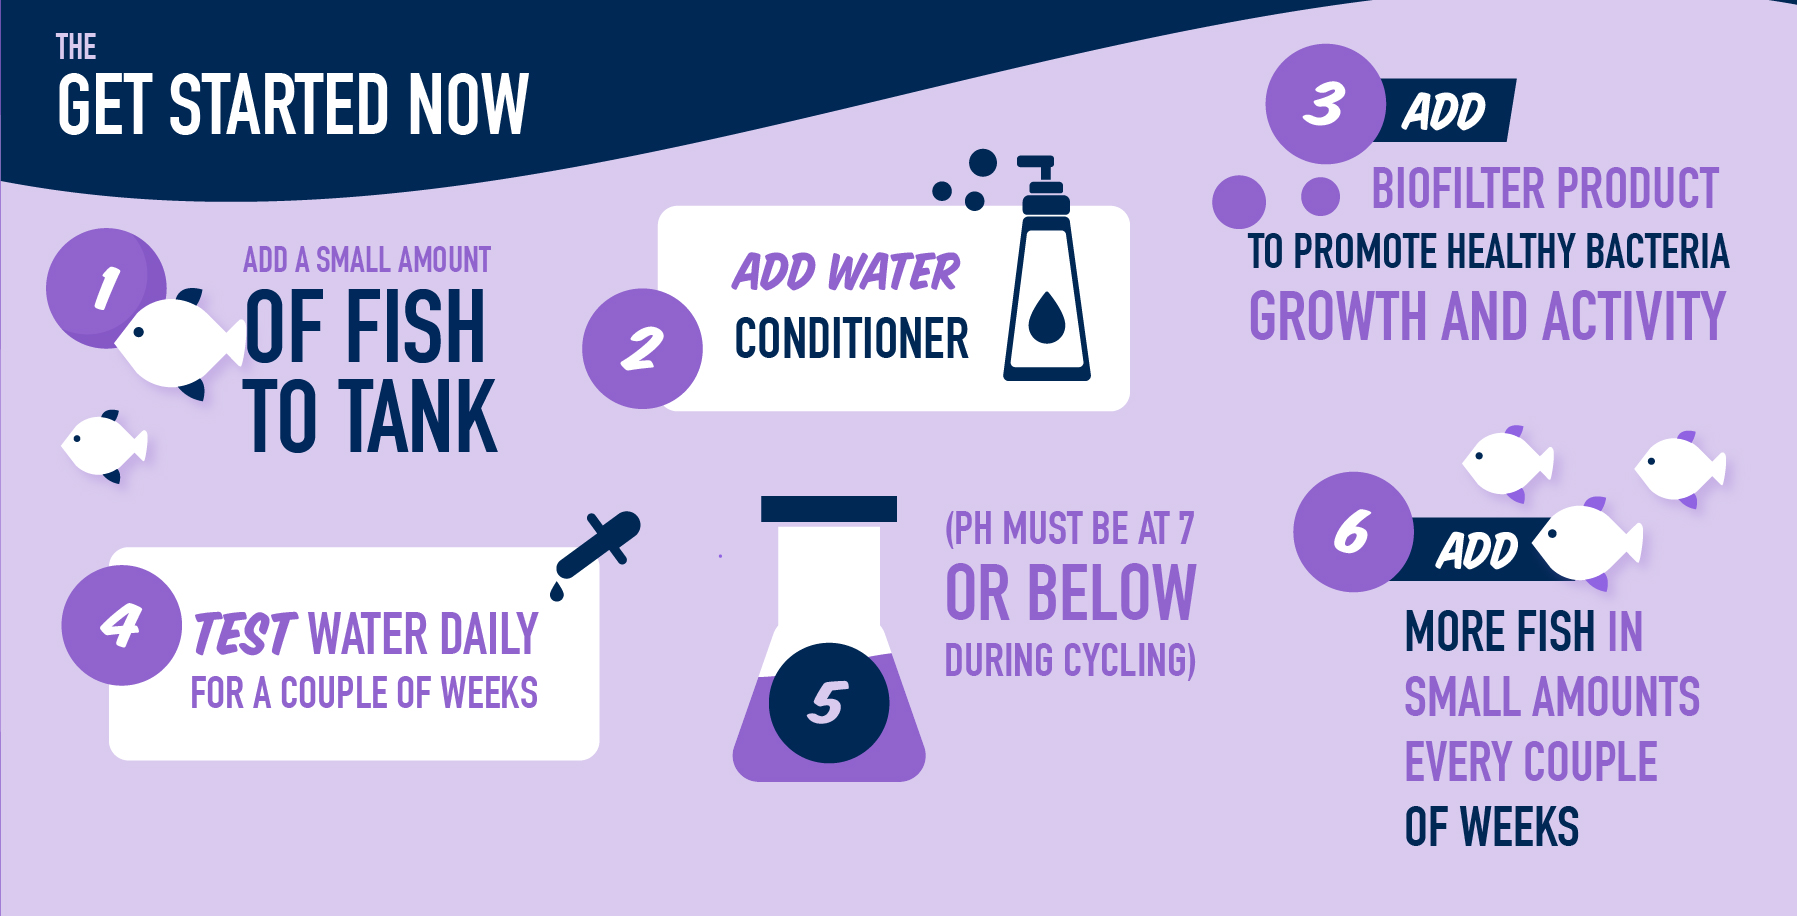 Get Started Now: 1. Add small amount of fish to tank. 2. Add water conditioner.  3. Add biofilter product to promote healthy bacteria growth and activity. 4. Test water daily for a couple of weeks. 5. PH must be at 7 of below during cycling. 6. Add more fish in small amounts every couple of weeks.